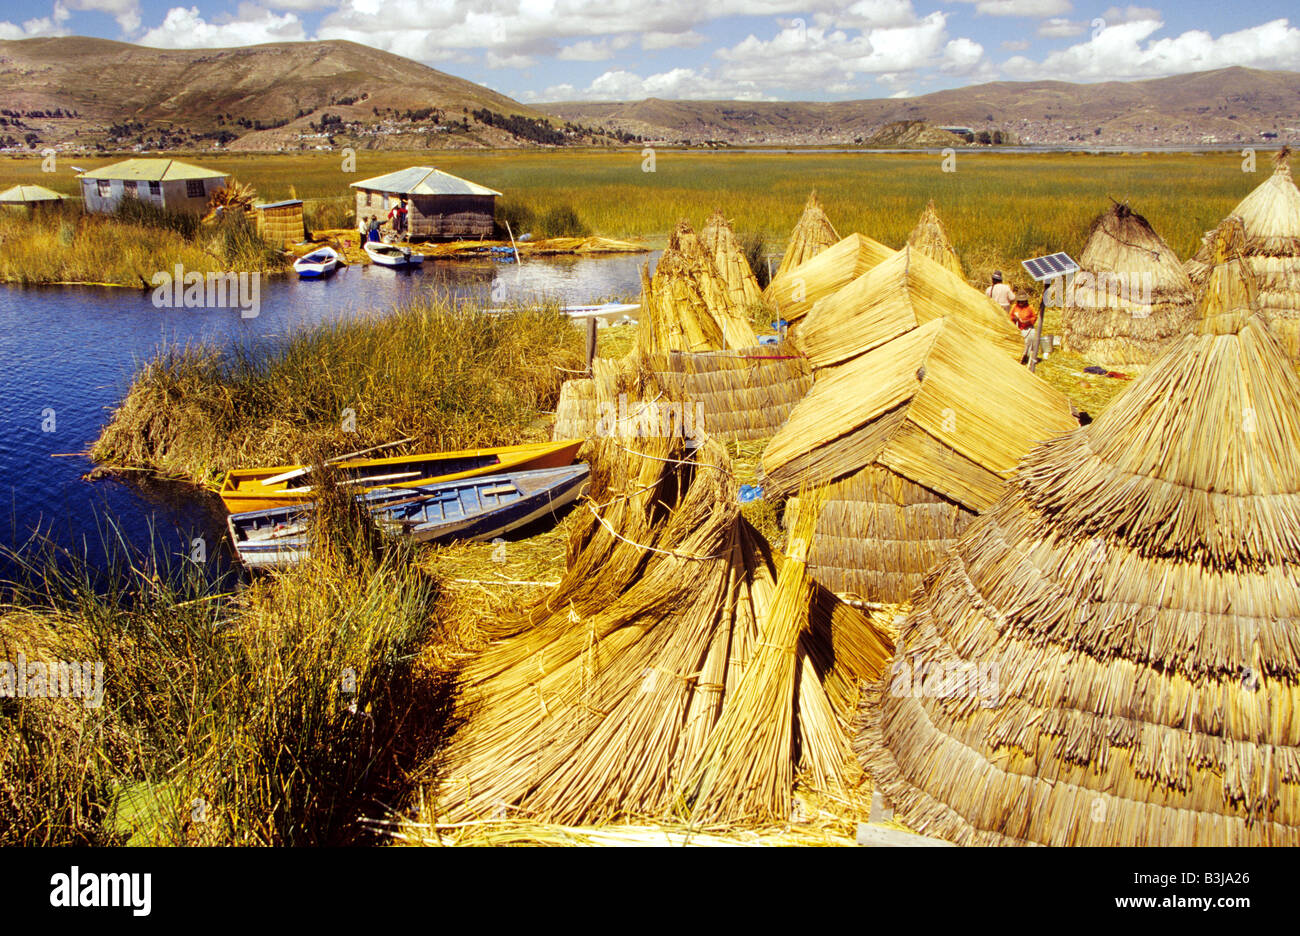 Floating islands and Huts made of reed of the Uros peoples of lake Titikaka aka Titicaca in Puno, Peru Stock Photo